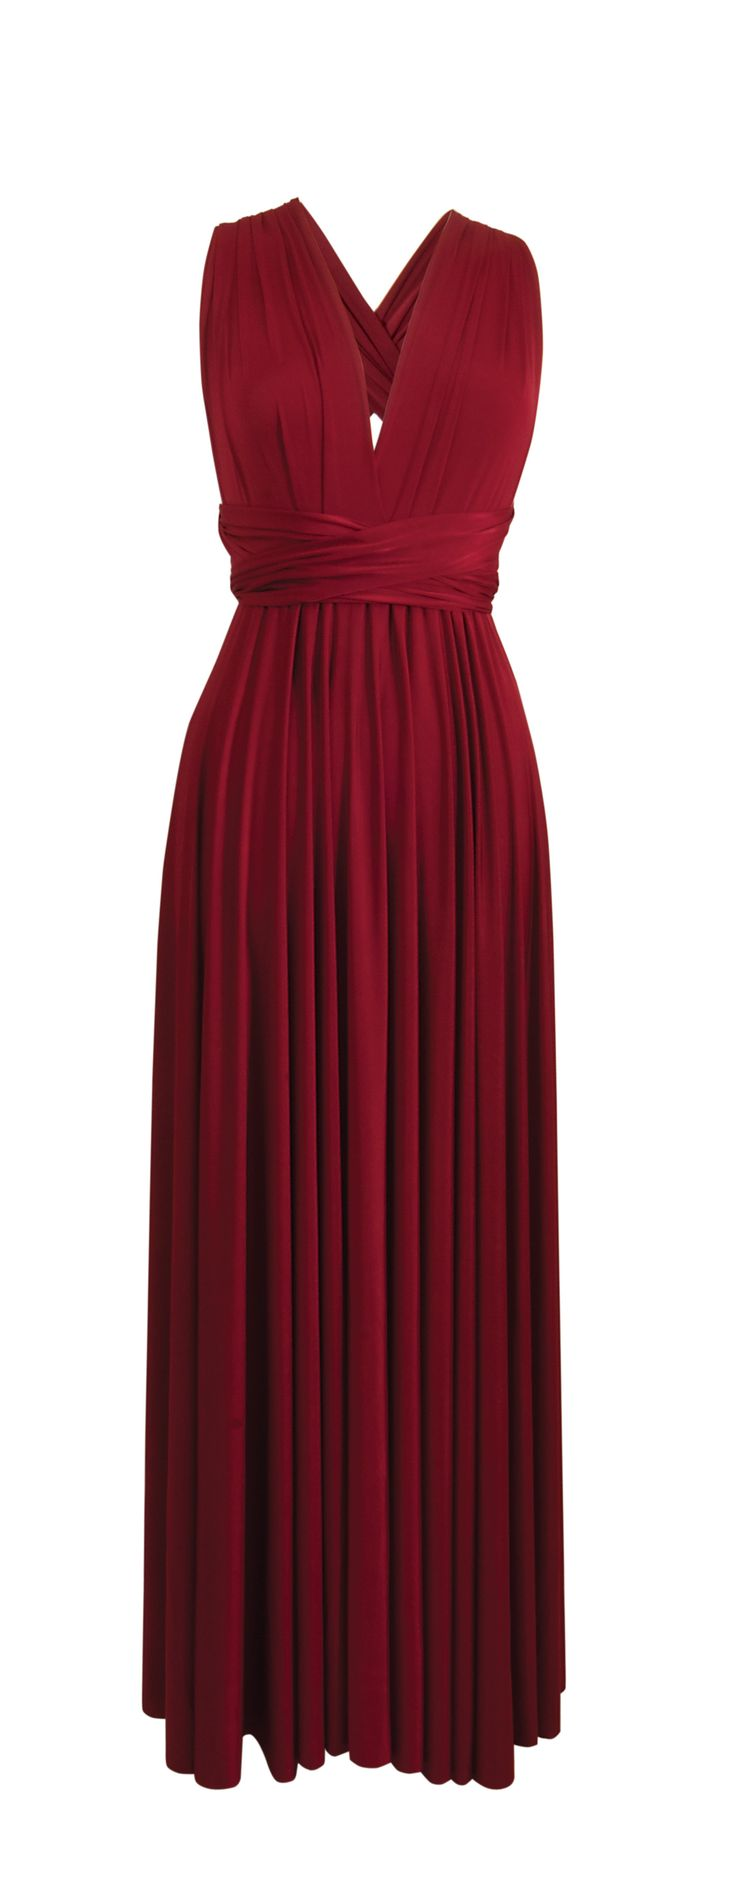 The stunning Multiway Maxi Dress in Dark Red.